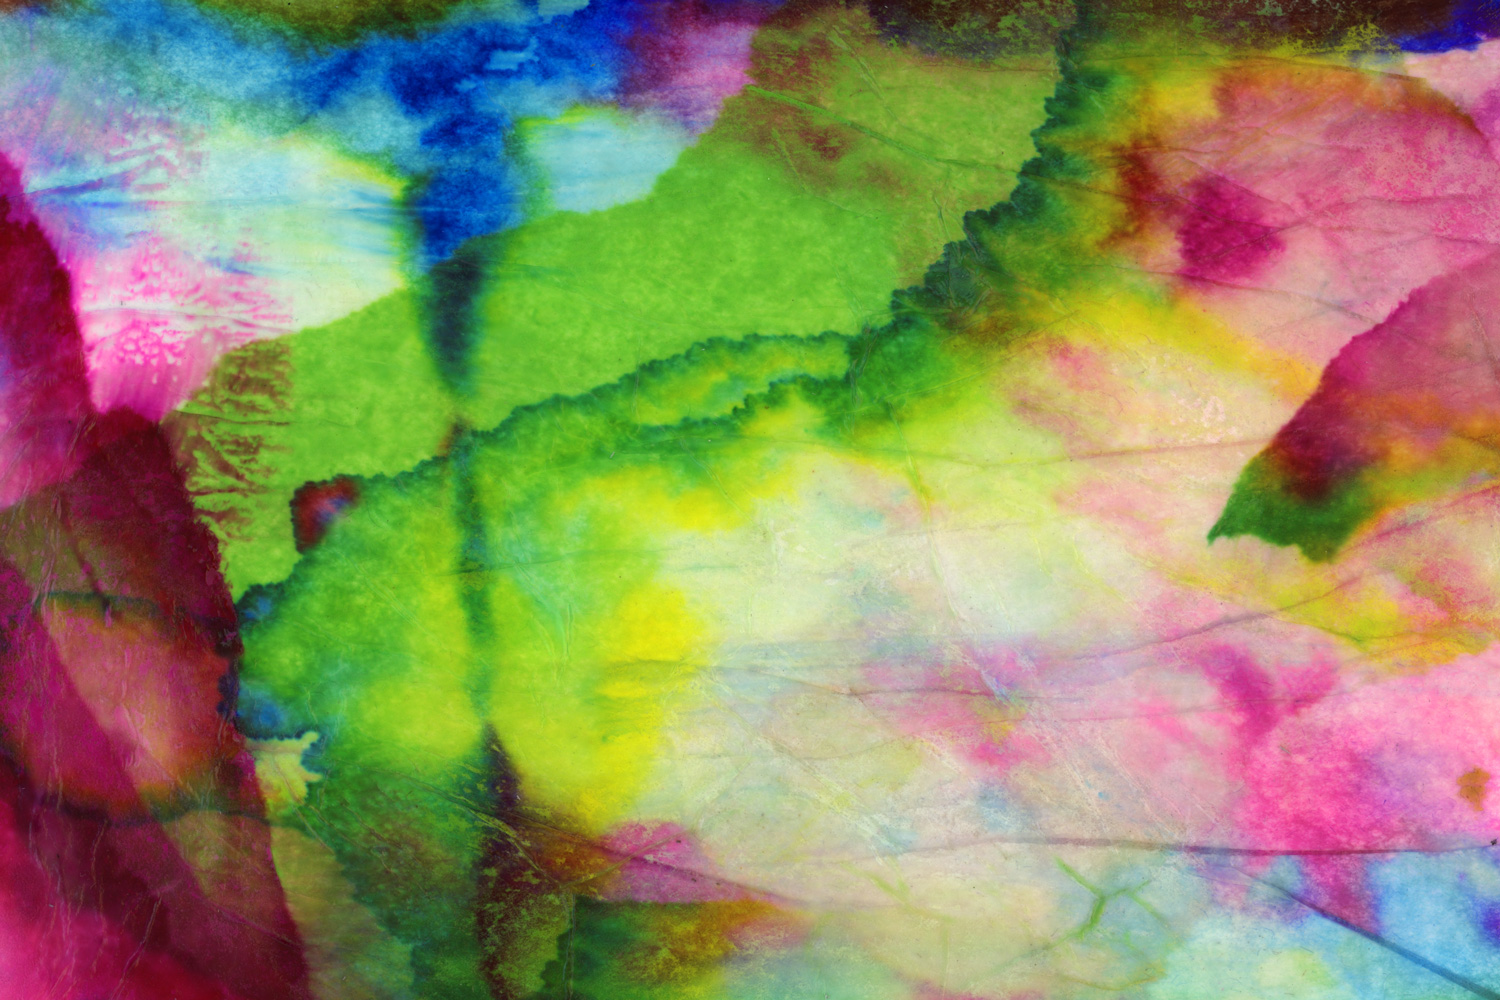 An abstract image made from varying colored tissue papers. Illustration by Ryan Edmund Thiel.